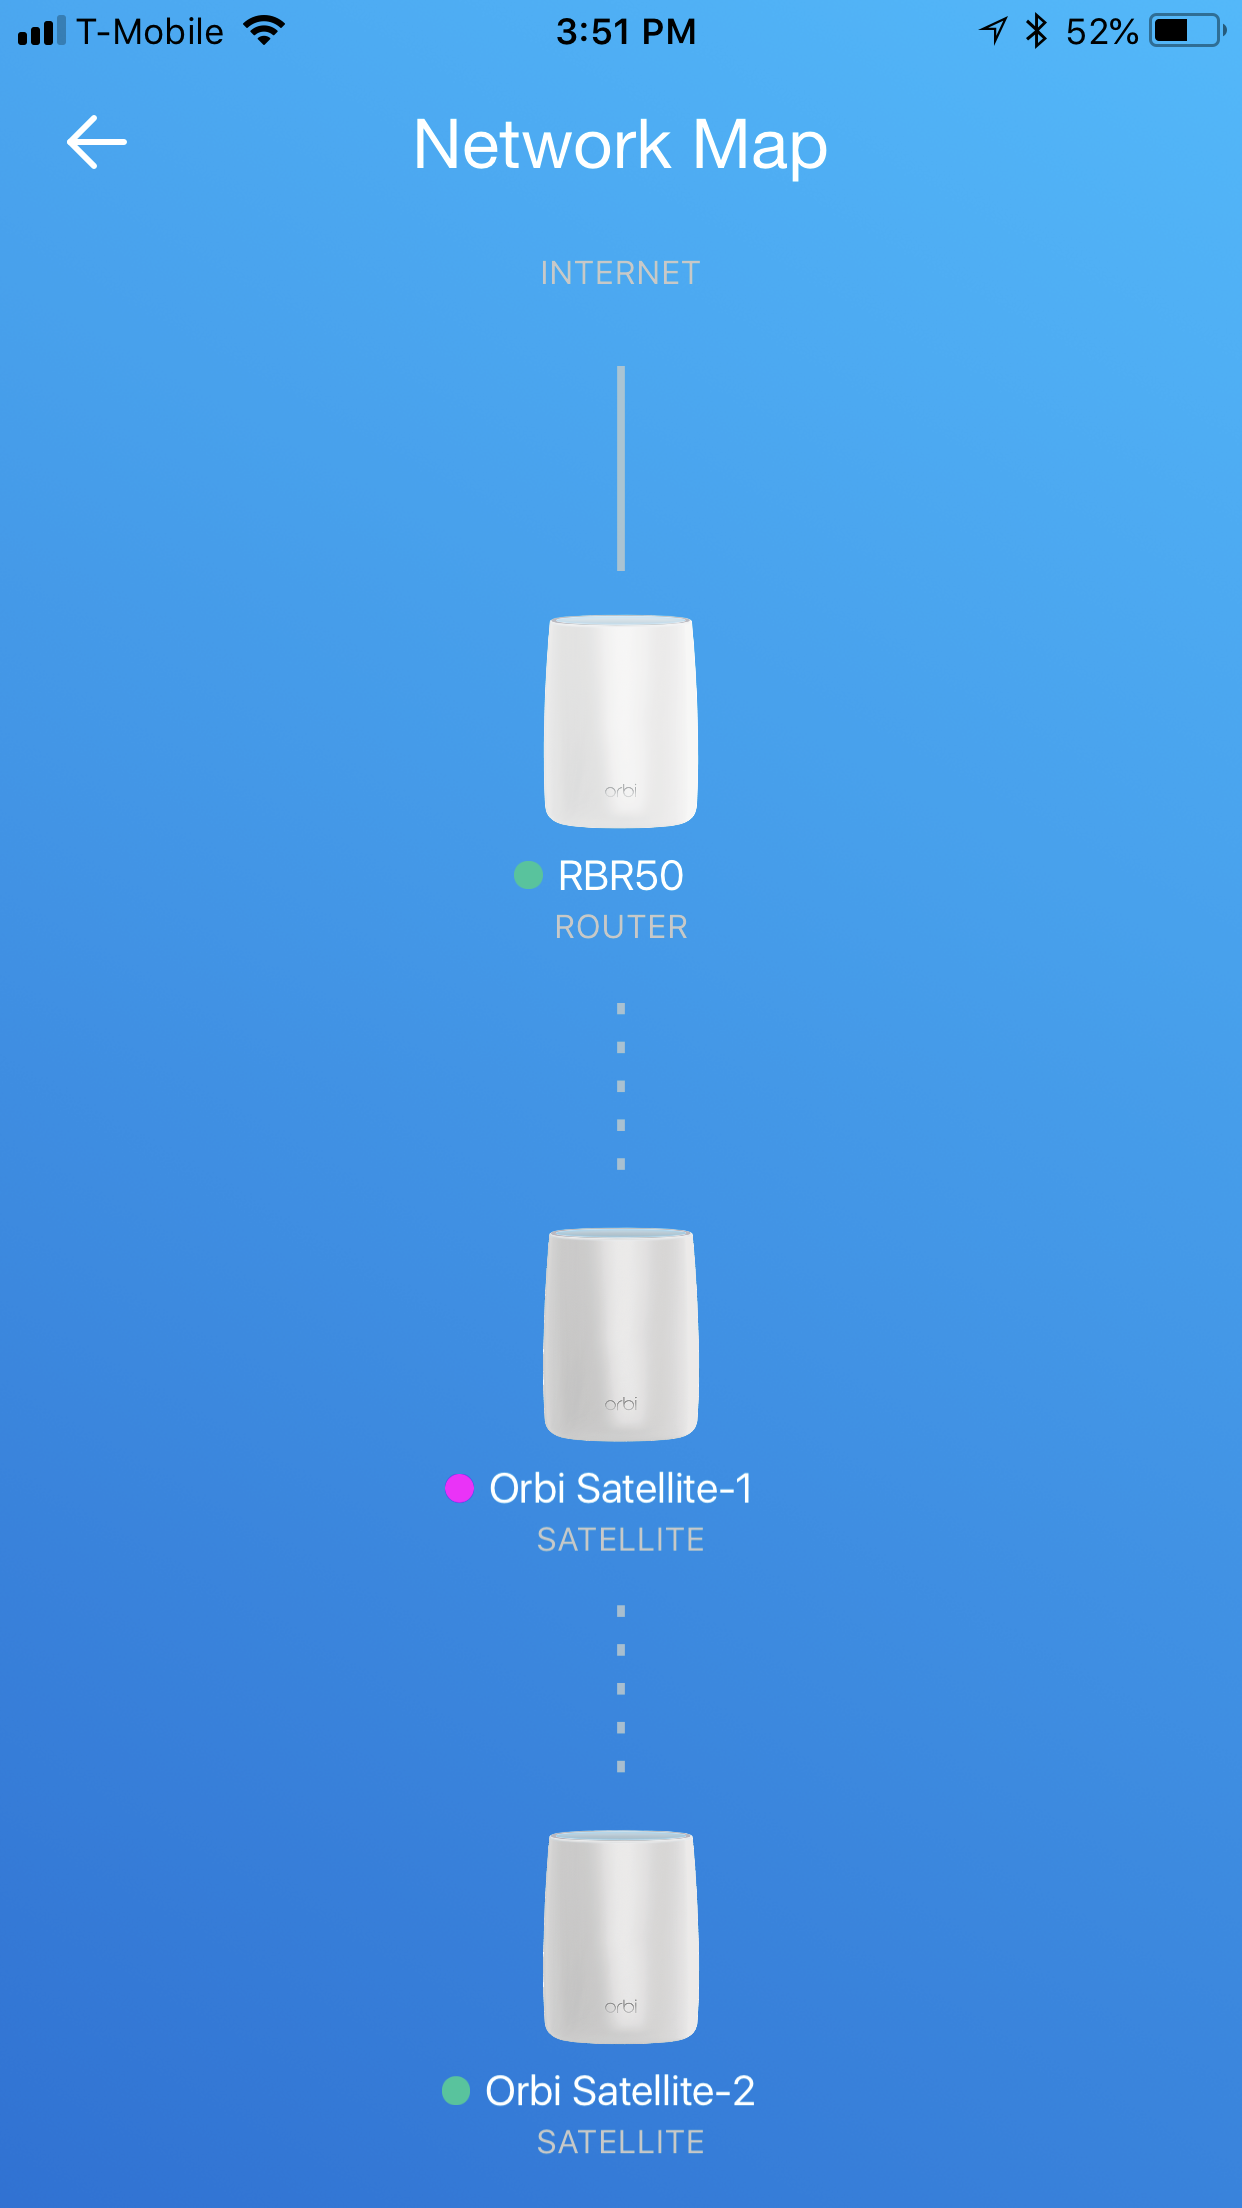 Re: Orbi satellite dropping connection - Page 20 - NETGEAR Communities